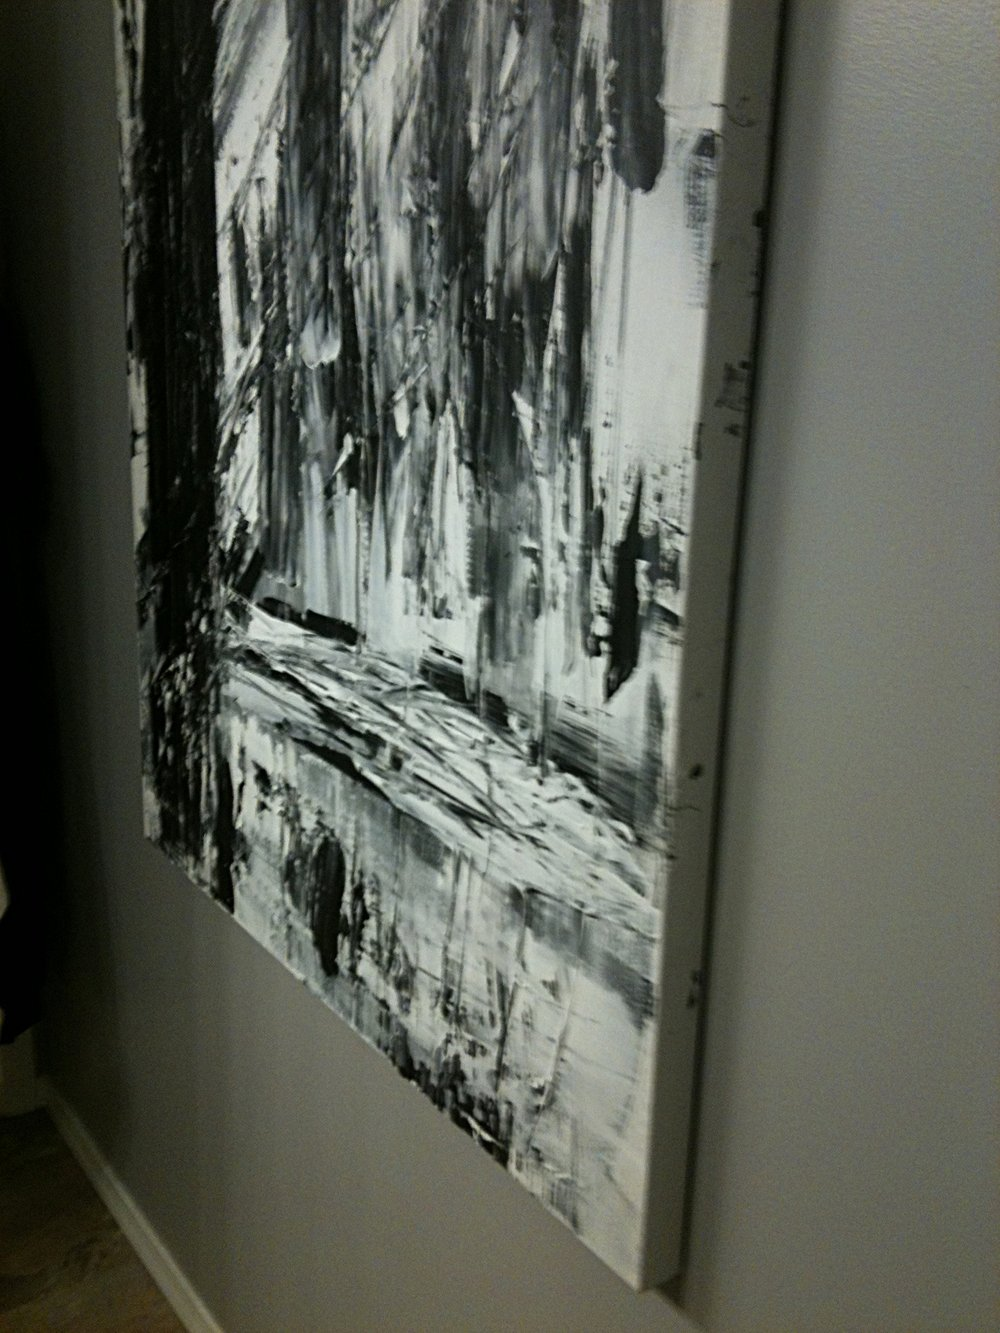 black and white series no. 1 / acrylic on canvas / 60 in. x 48 in.